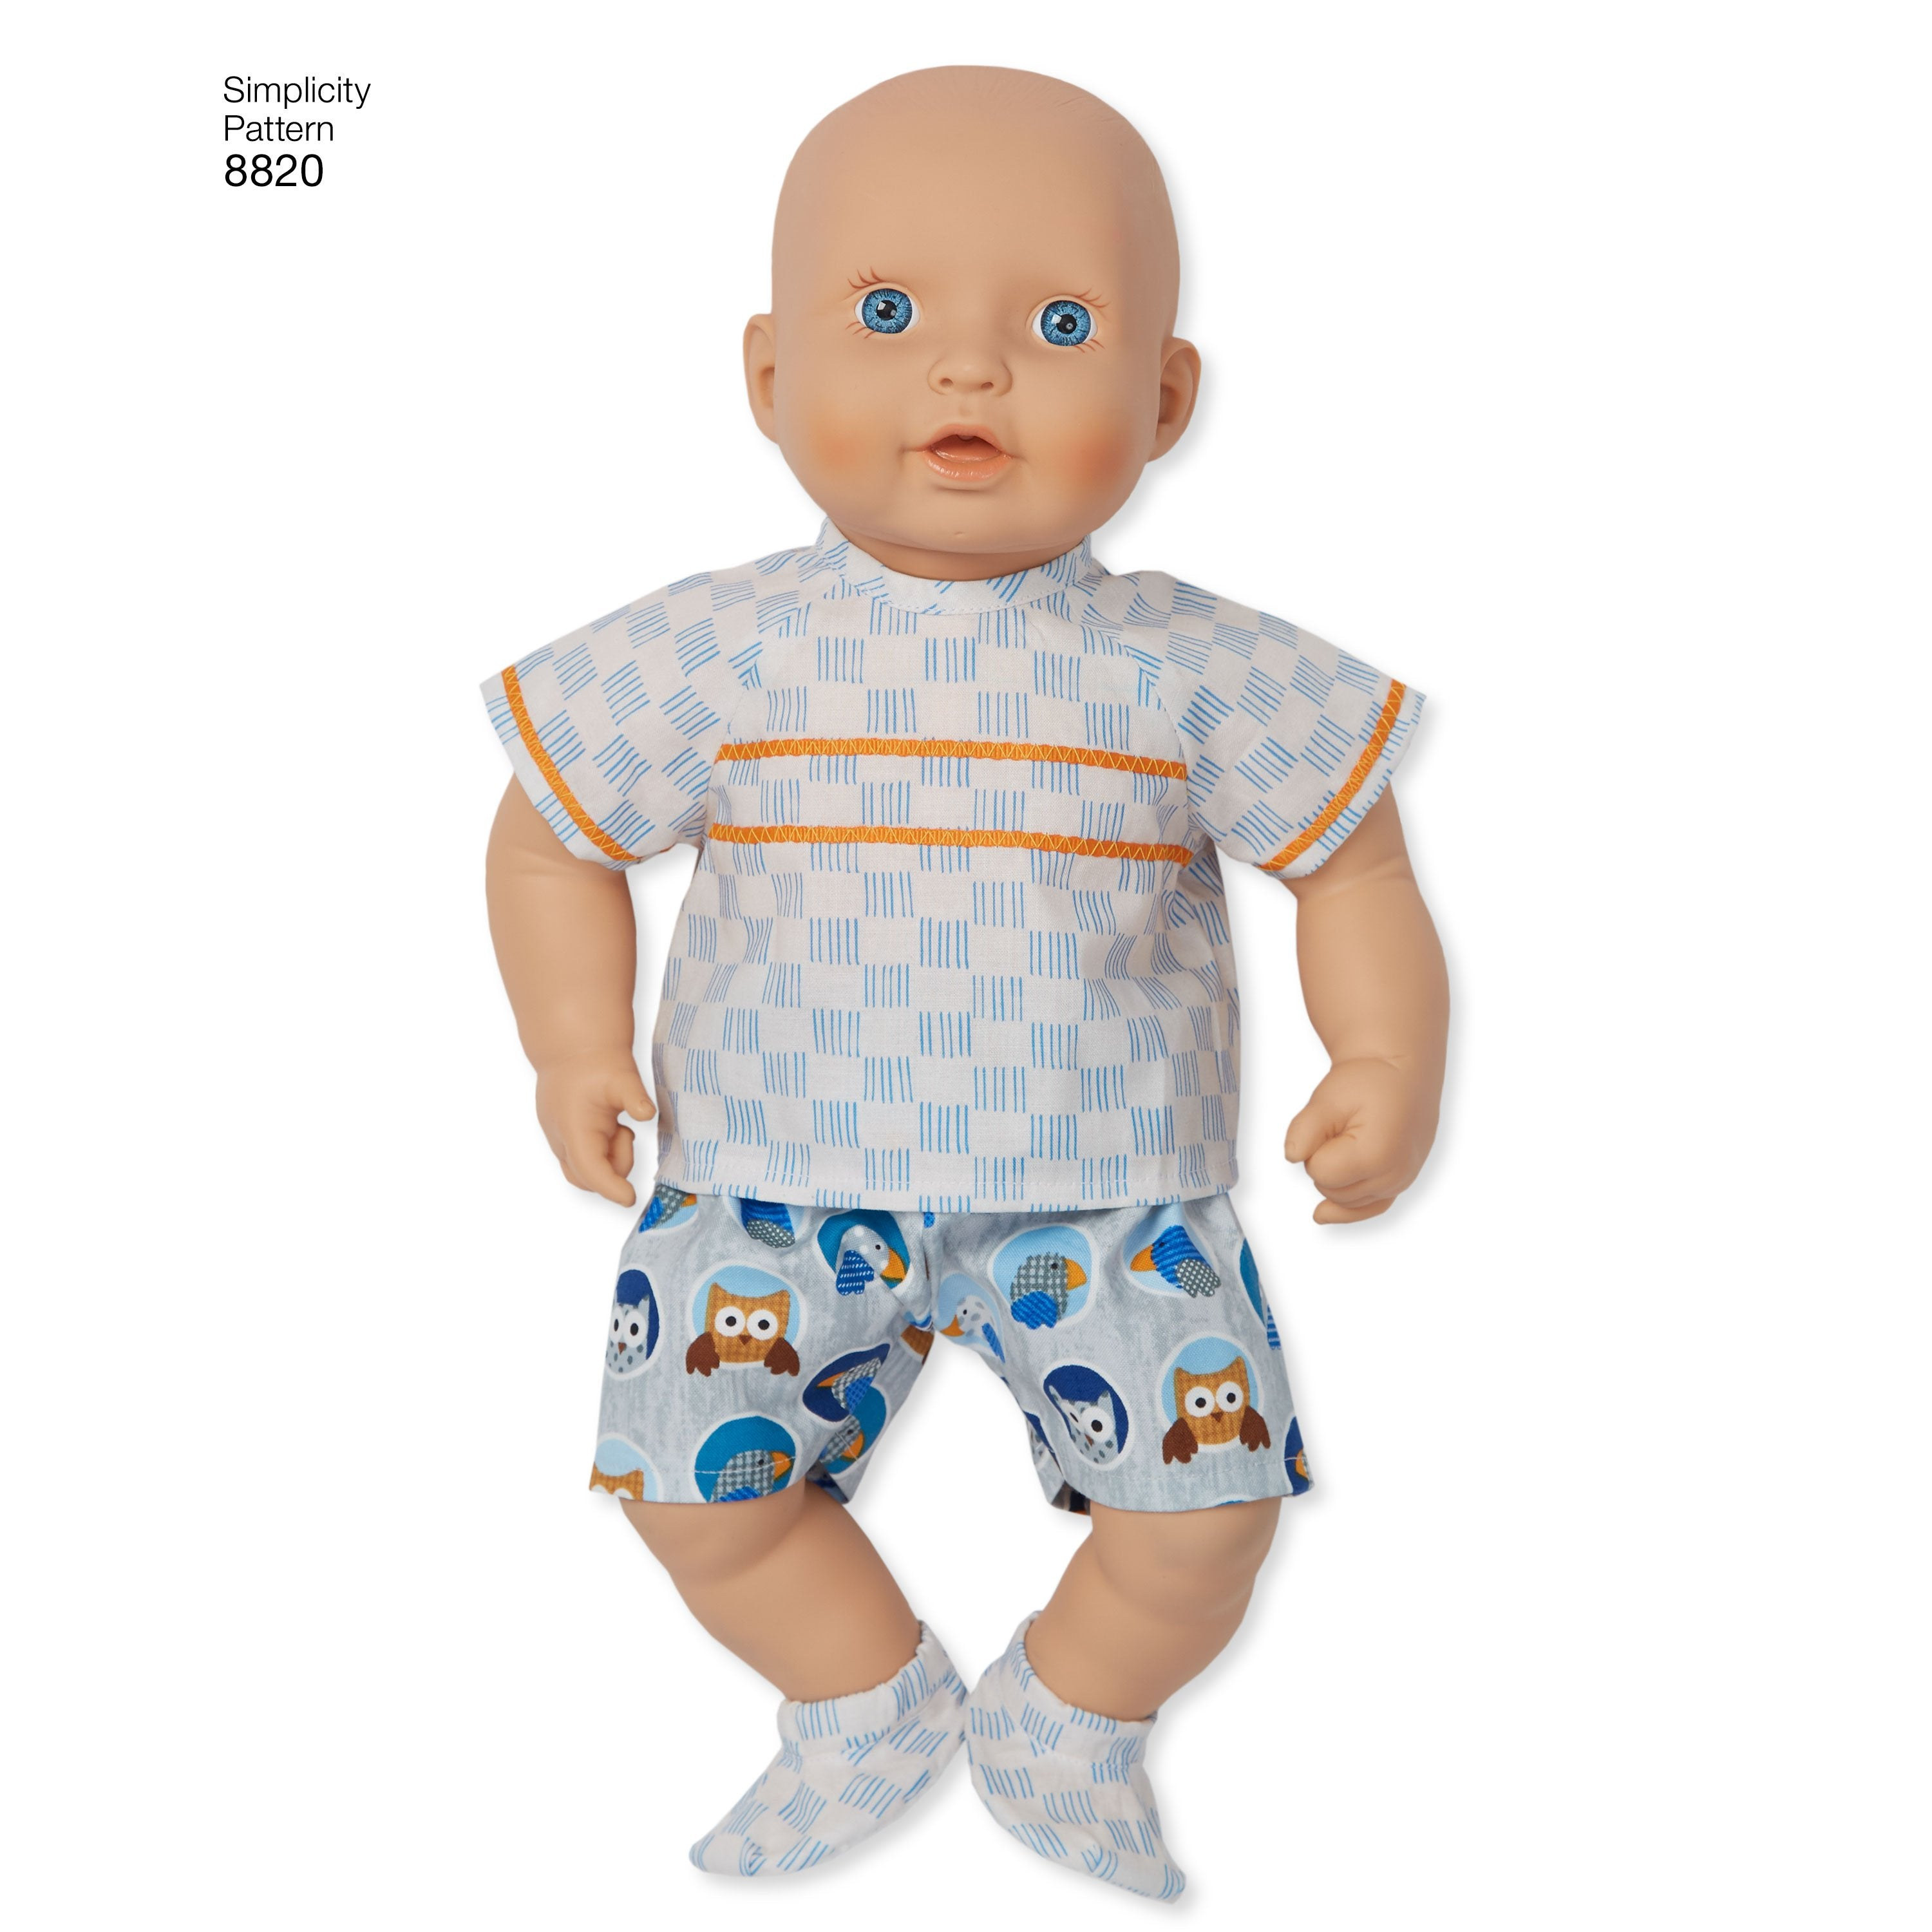 S8820 Baby Doll Clothes - 15 inch